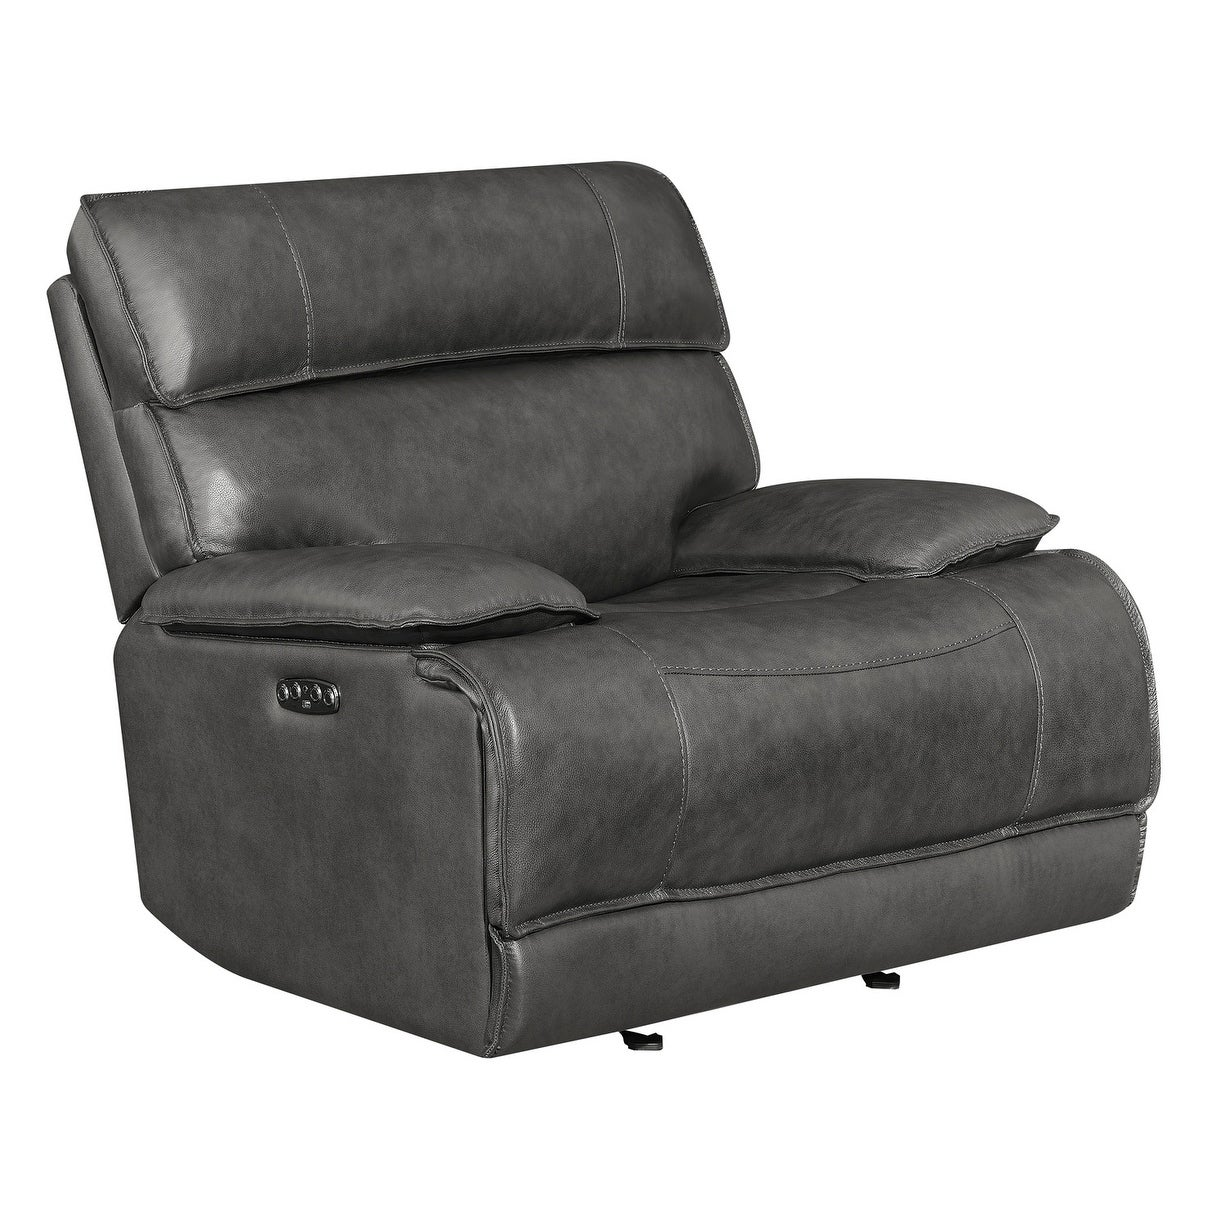 Groovy Stanford Charcoal Power Glider Recliner With Power Headrest Alphanode Cool Chair Designs And Ideas Alphanodeonline